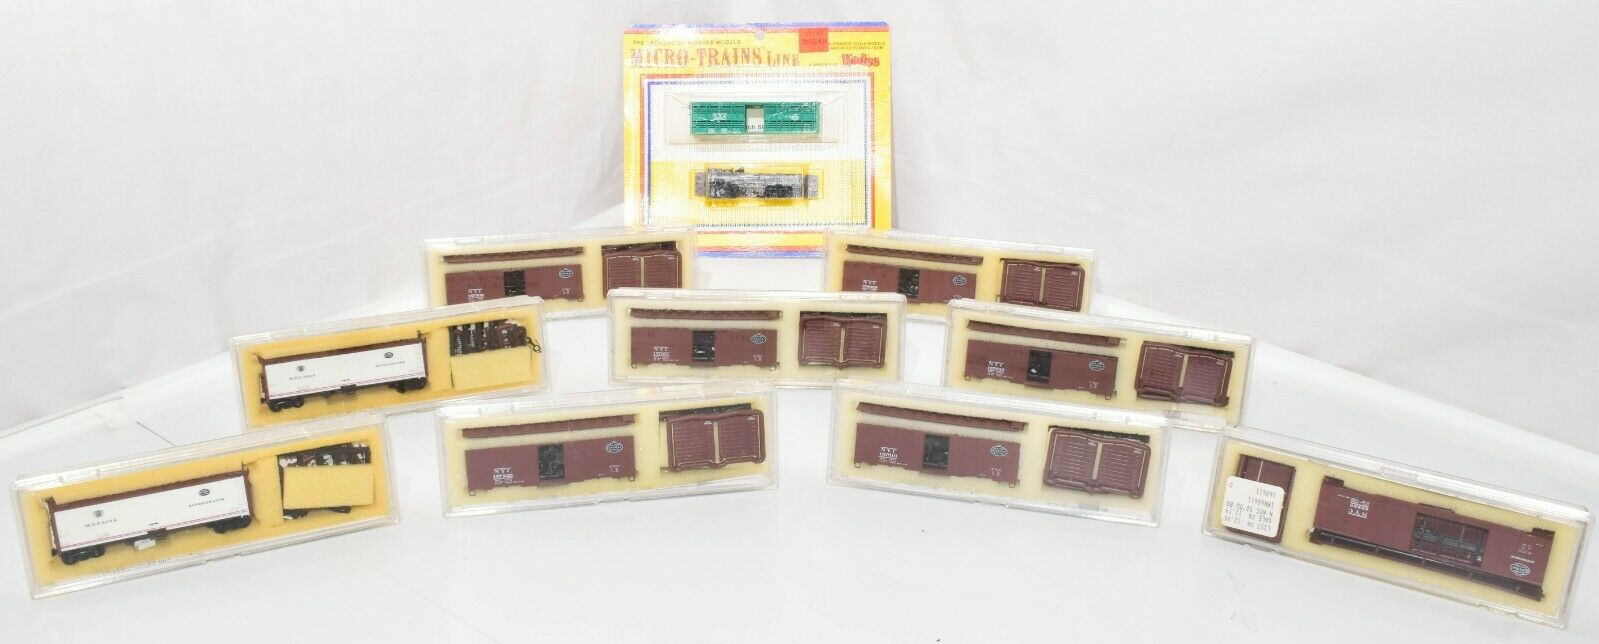 NEW Lot 10 N Scale Freight Cars Various 9 InterMountain 1 Micro Trains Vintage